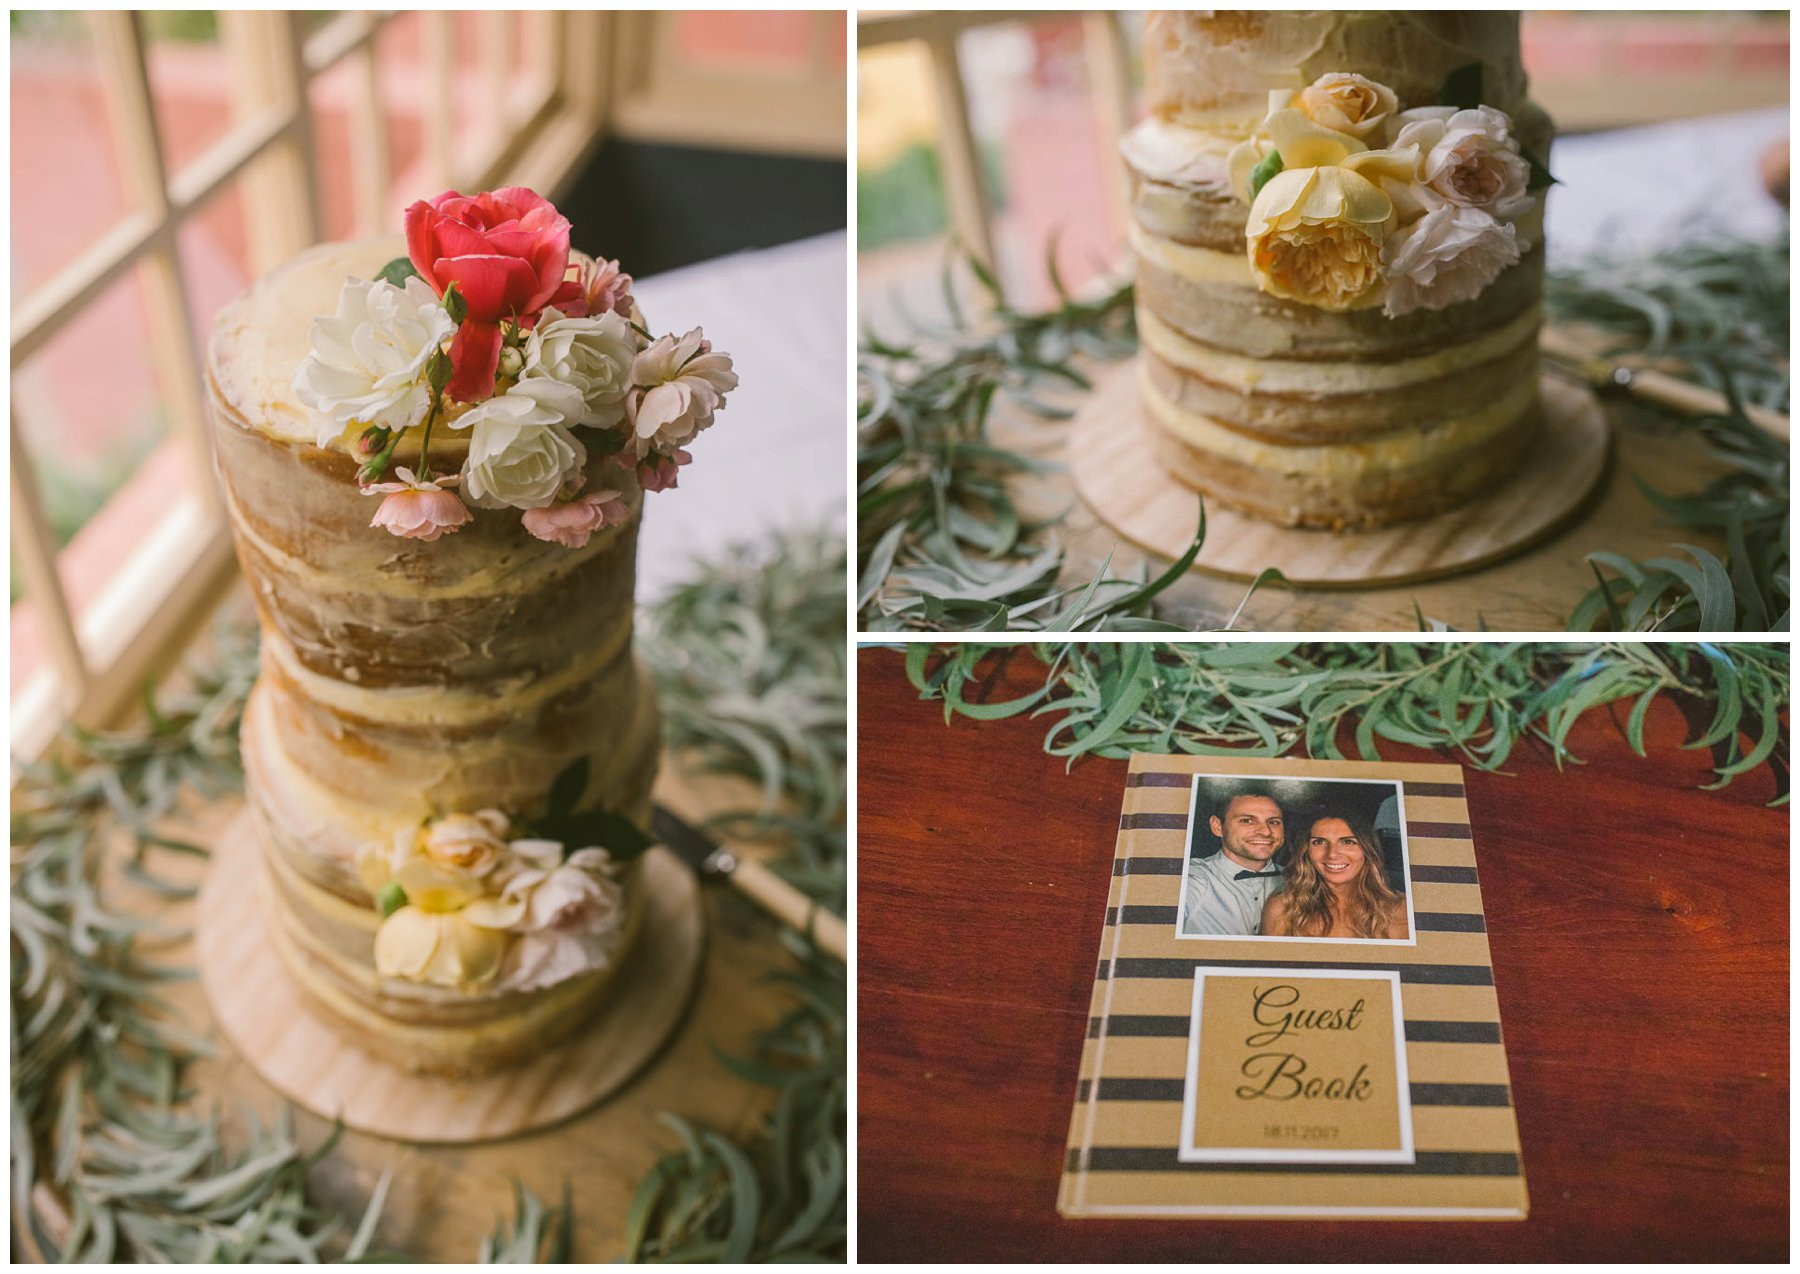 Patrick and Hollie, Coolangatta estate wedding, south coast wedding photographer, Southern Highlands wedding photographer, southern highlands photographer, diy wedding cake,